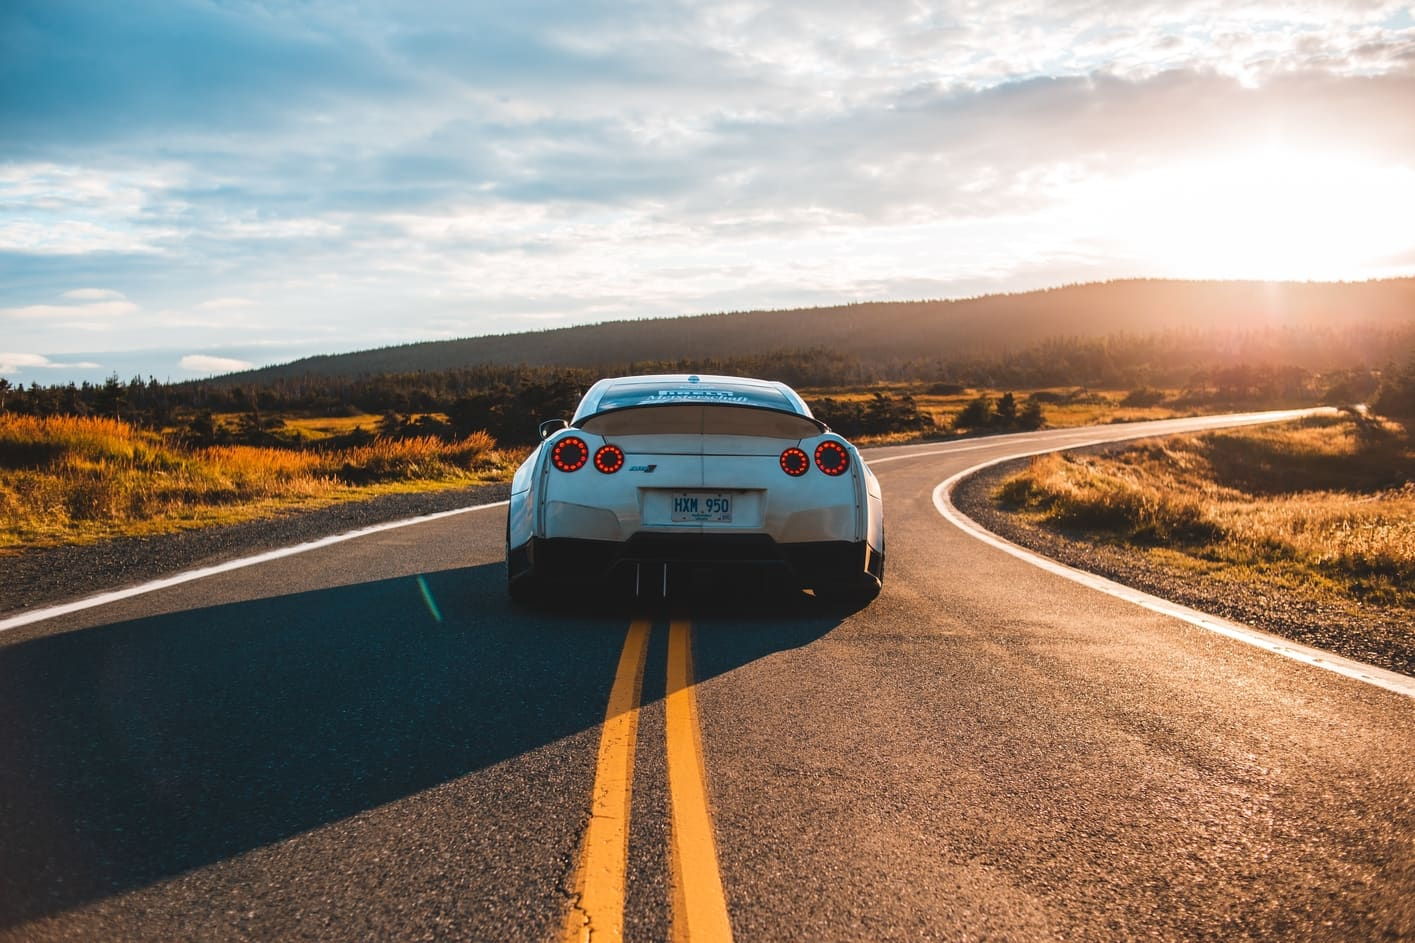 The fuel policy, an important cheapest rental car options